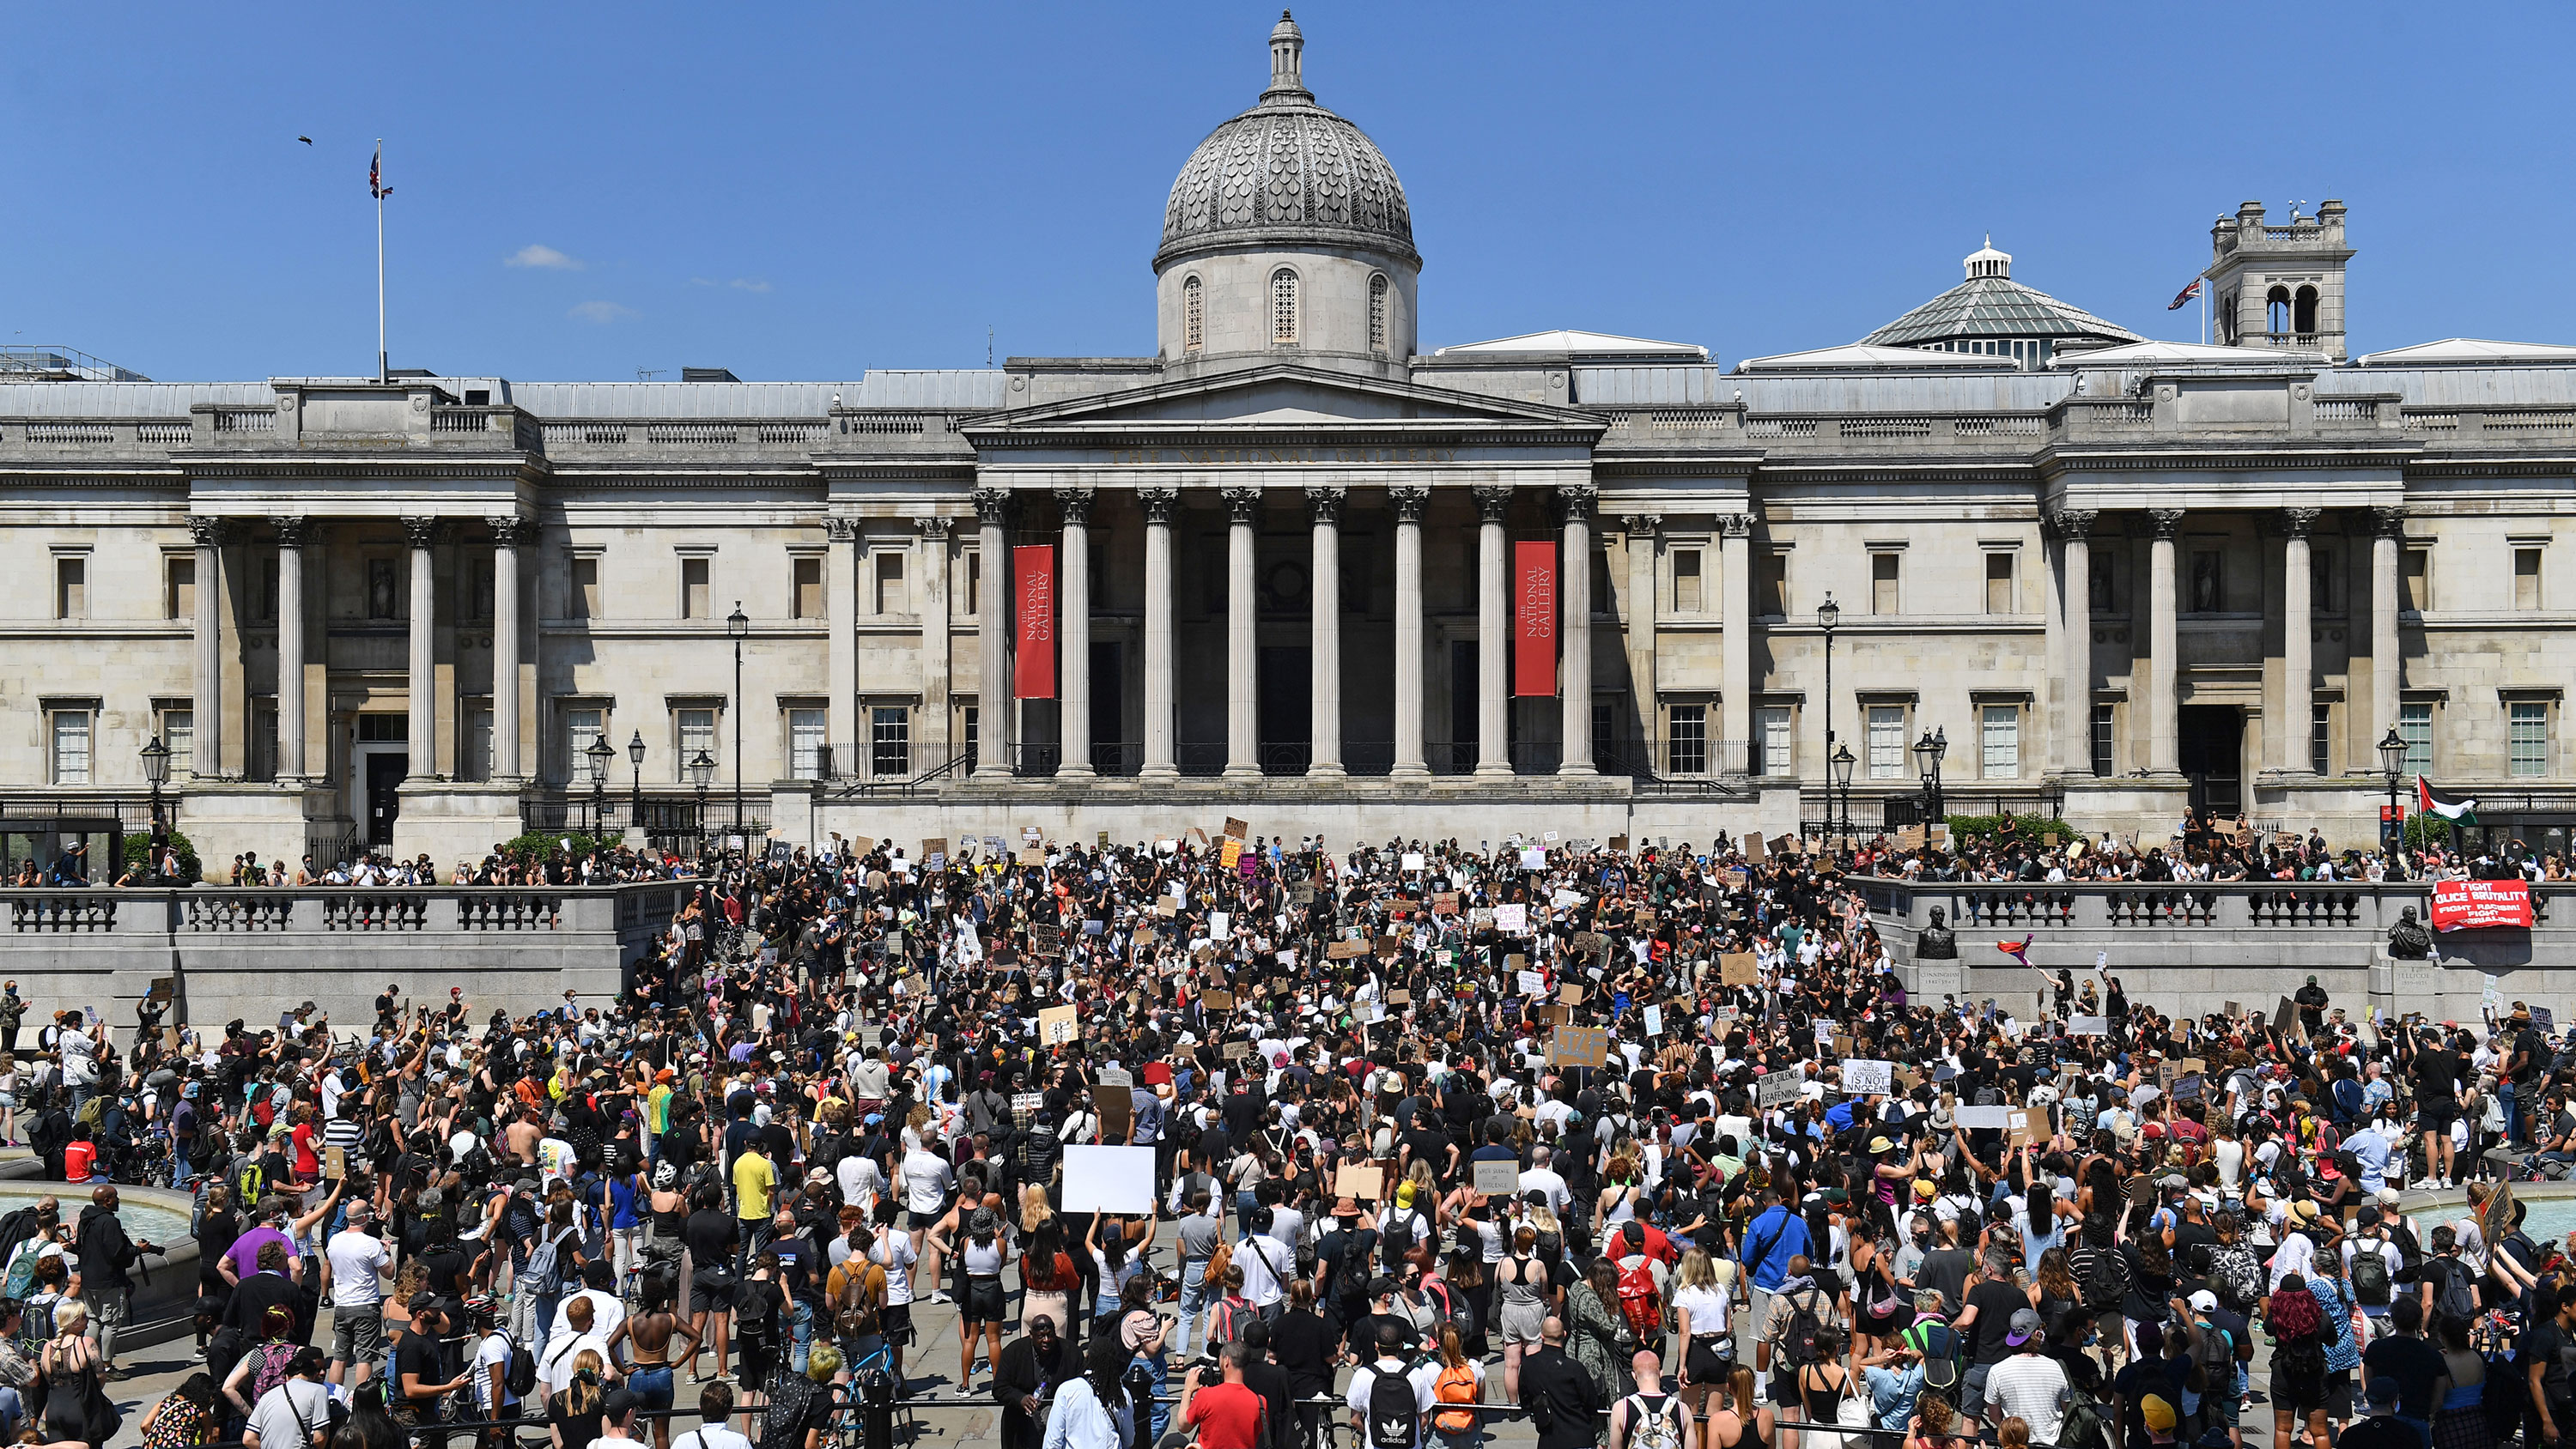 People gather in Trafalgar Square in London to take part in a Black Lives Matter protest on May 31.